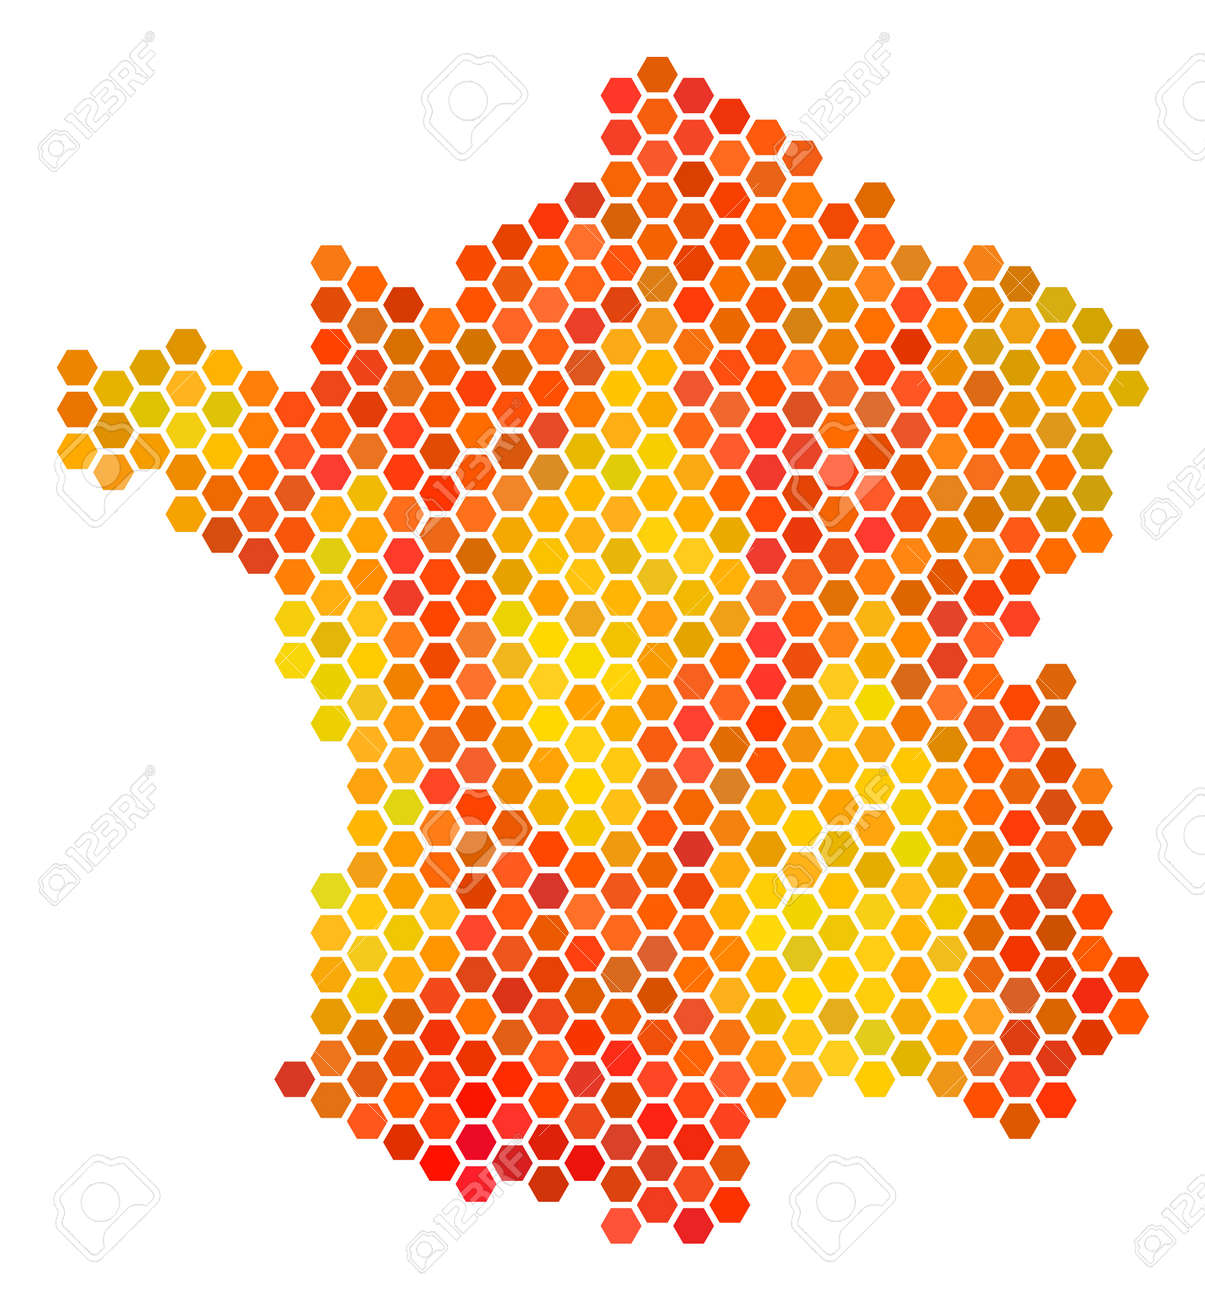 france map raster hex tile territory plan drawn with bright stock